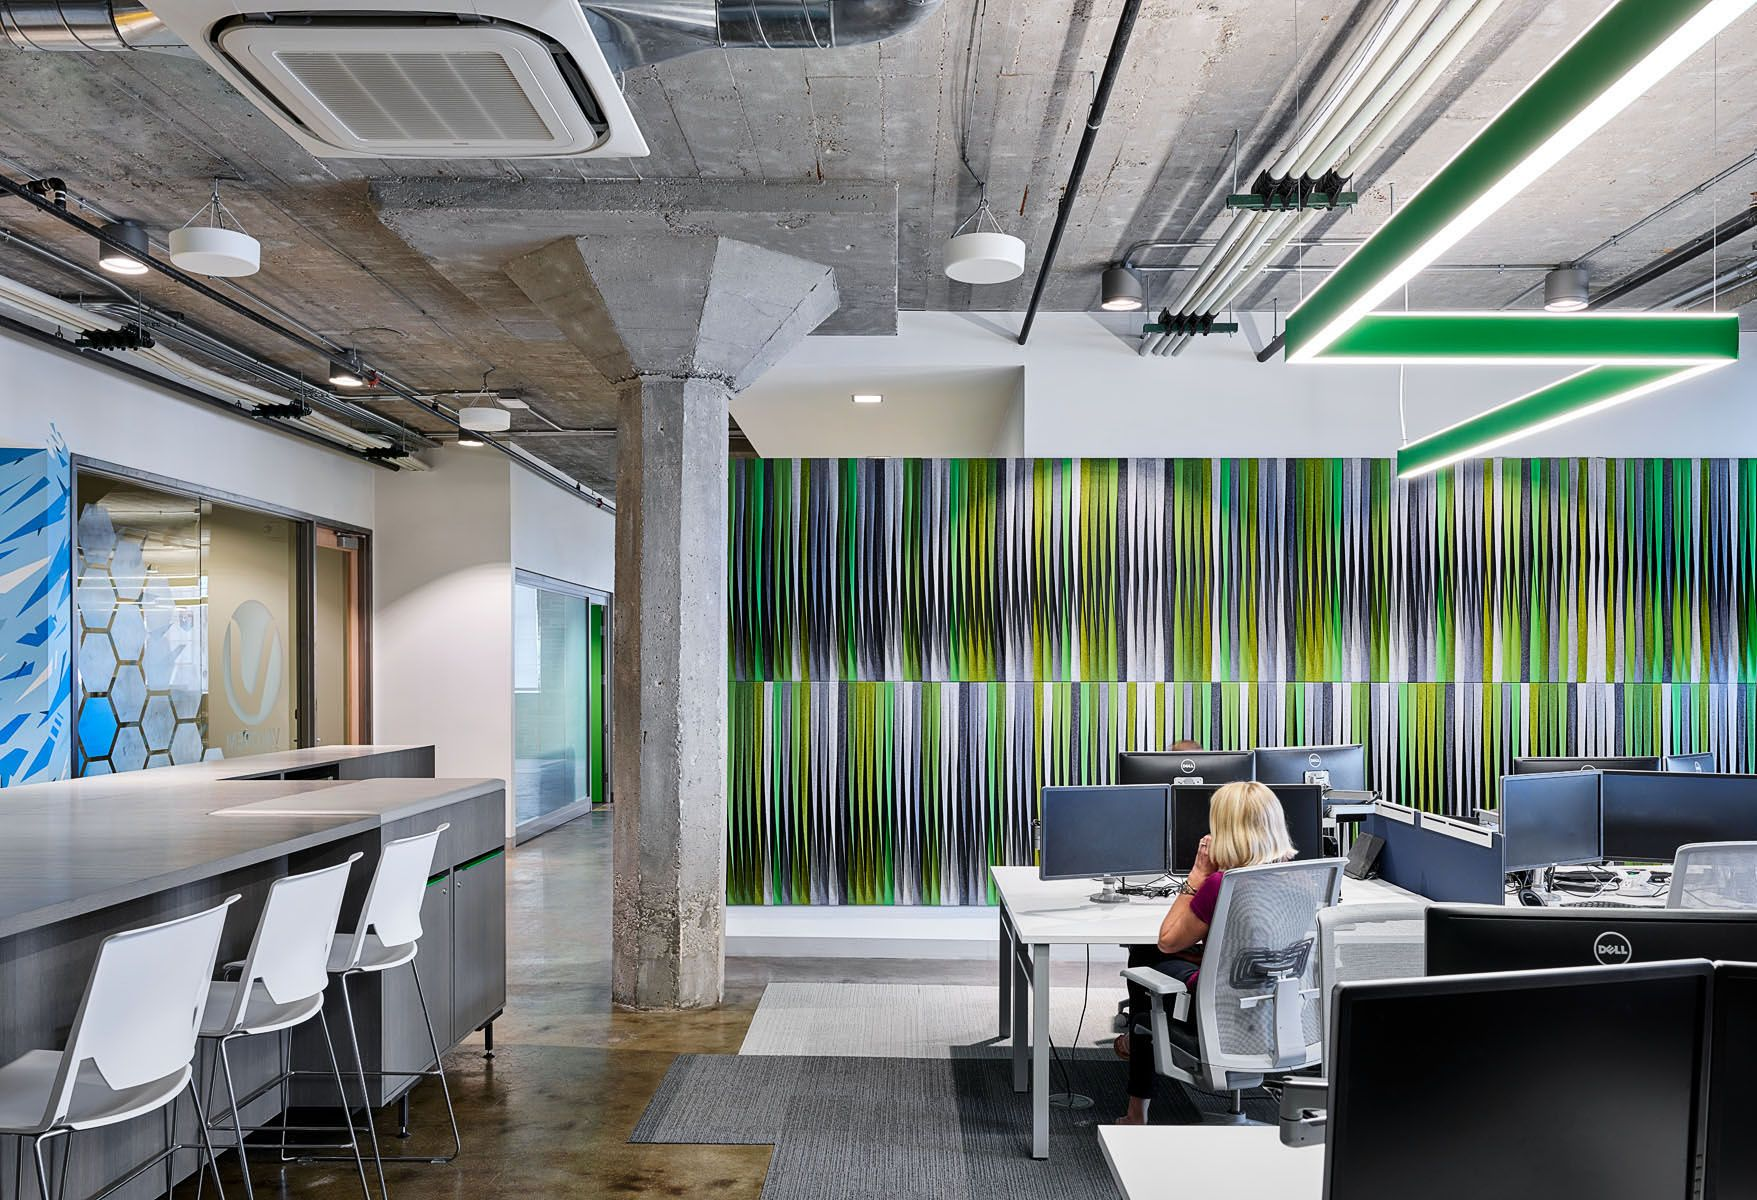 Valorem Consulting Offices In Crossroads Arts District Of Kansas City Mo Kc Tech Firm Sup Architecture Design Work Environment Design Renovation Architecture